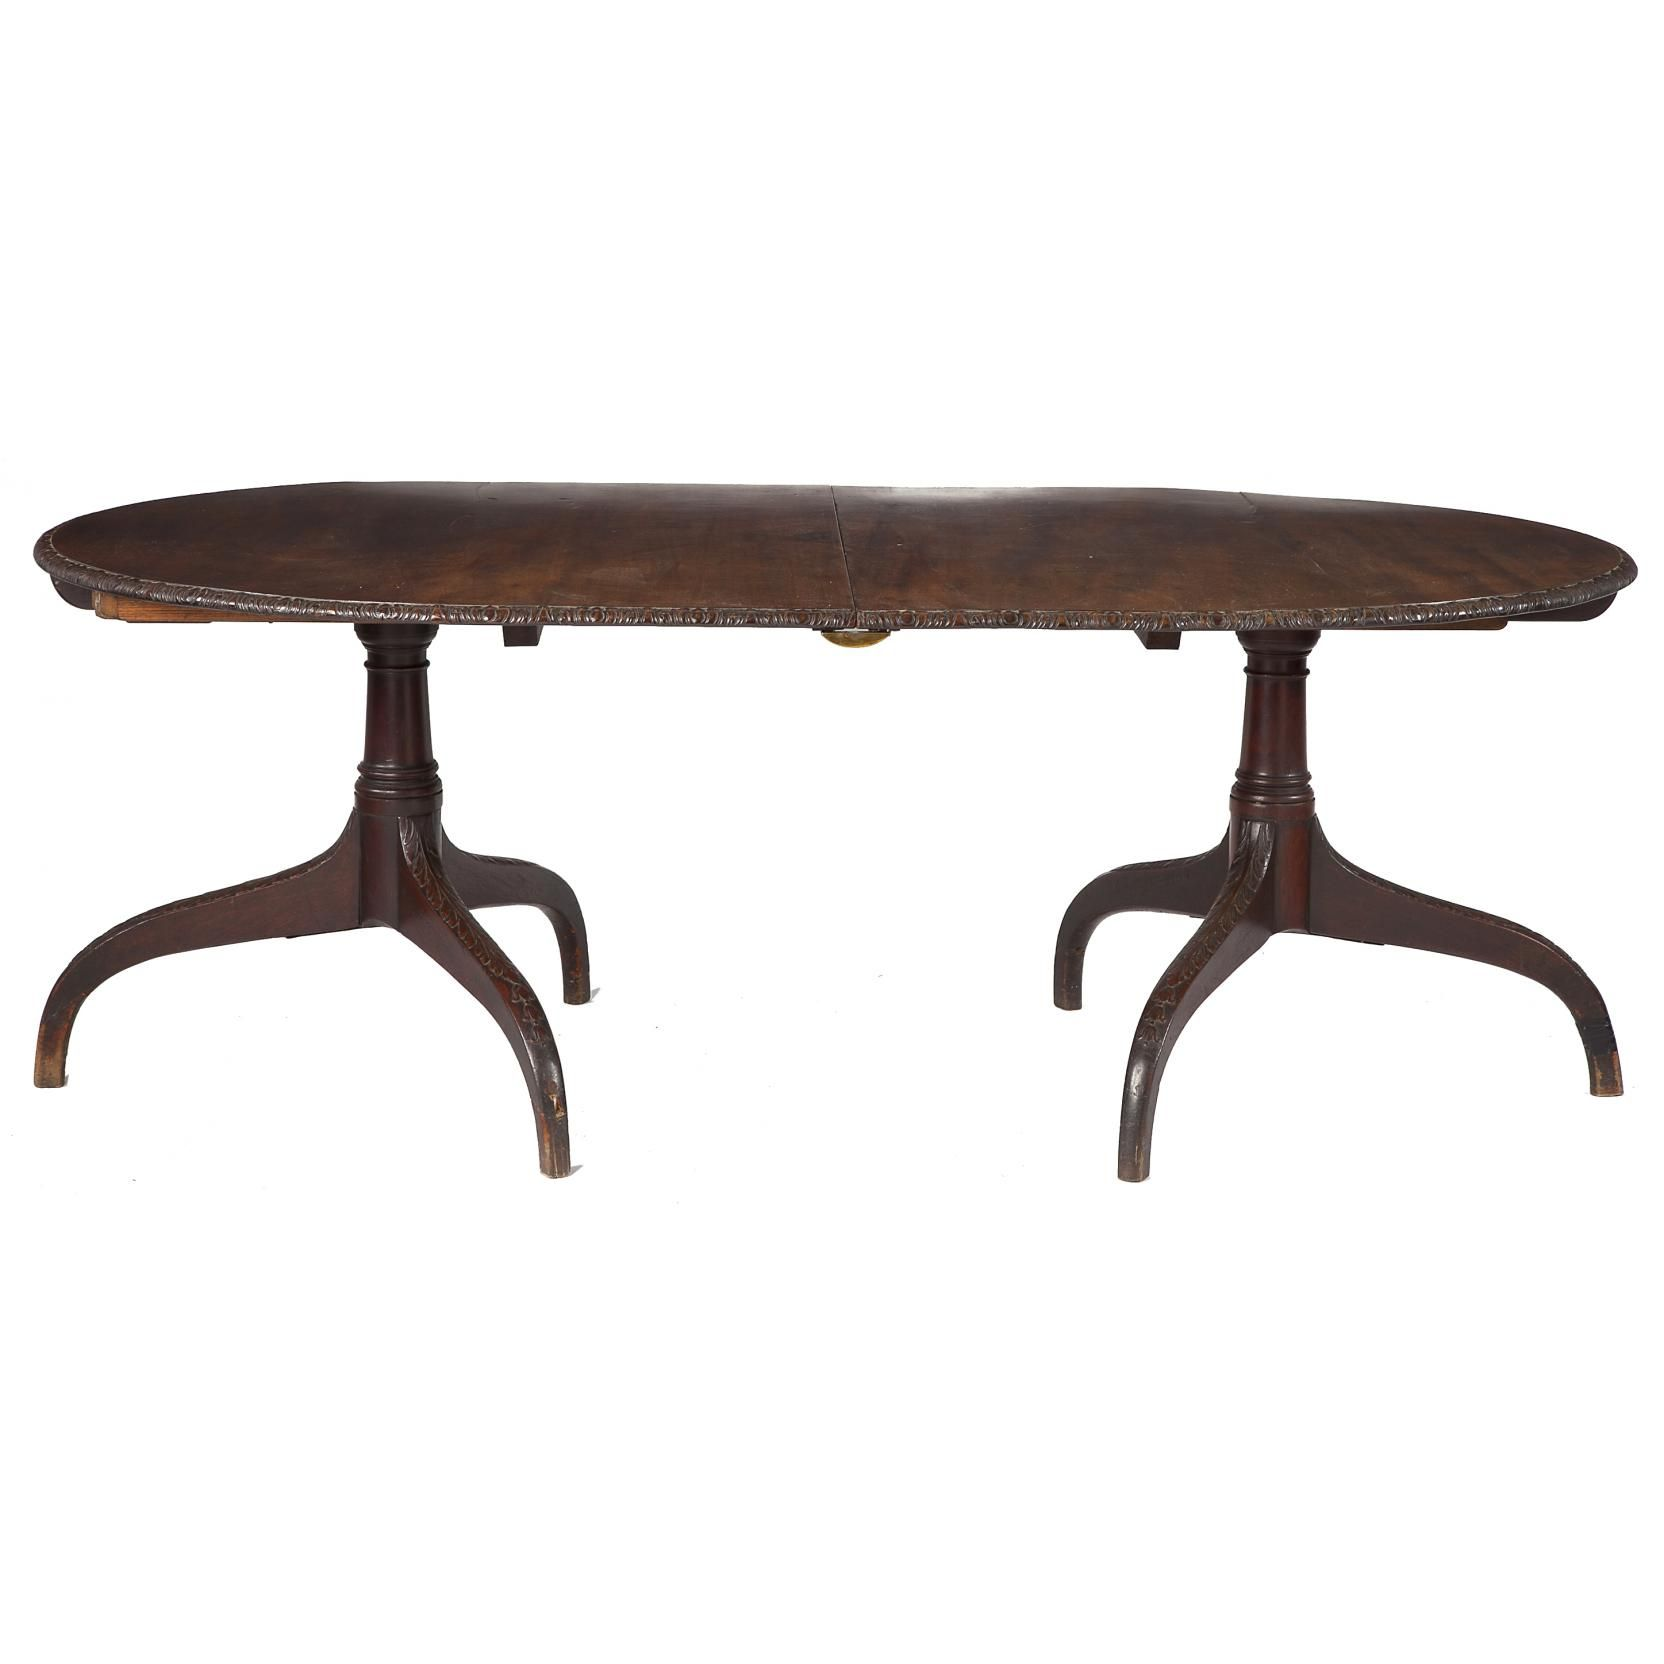 George III Style Double Pedestal Dining Table Sold $2,750.